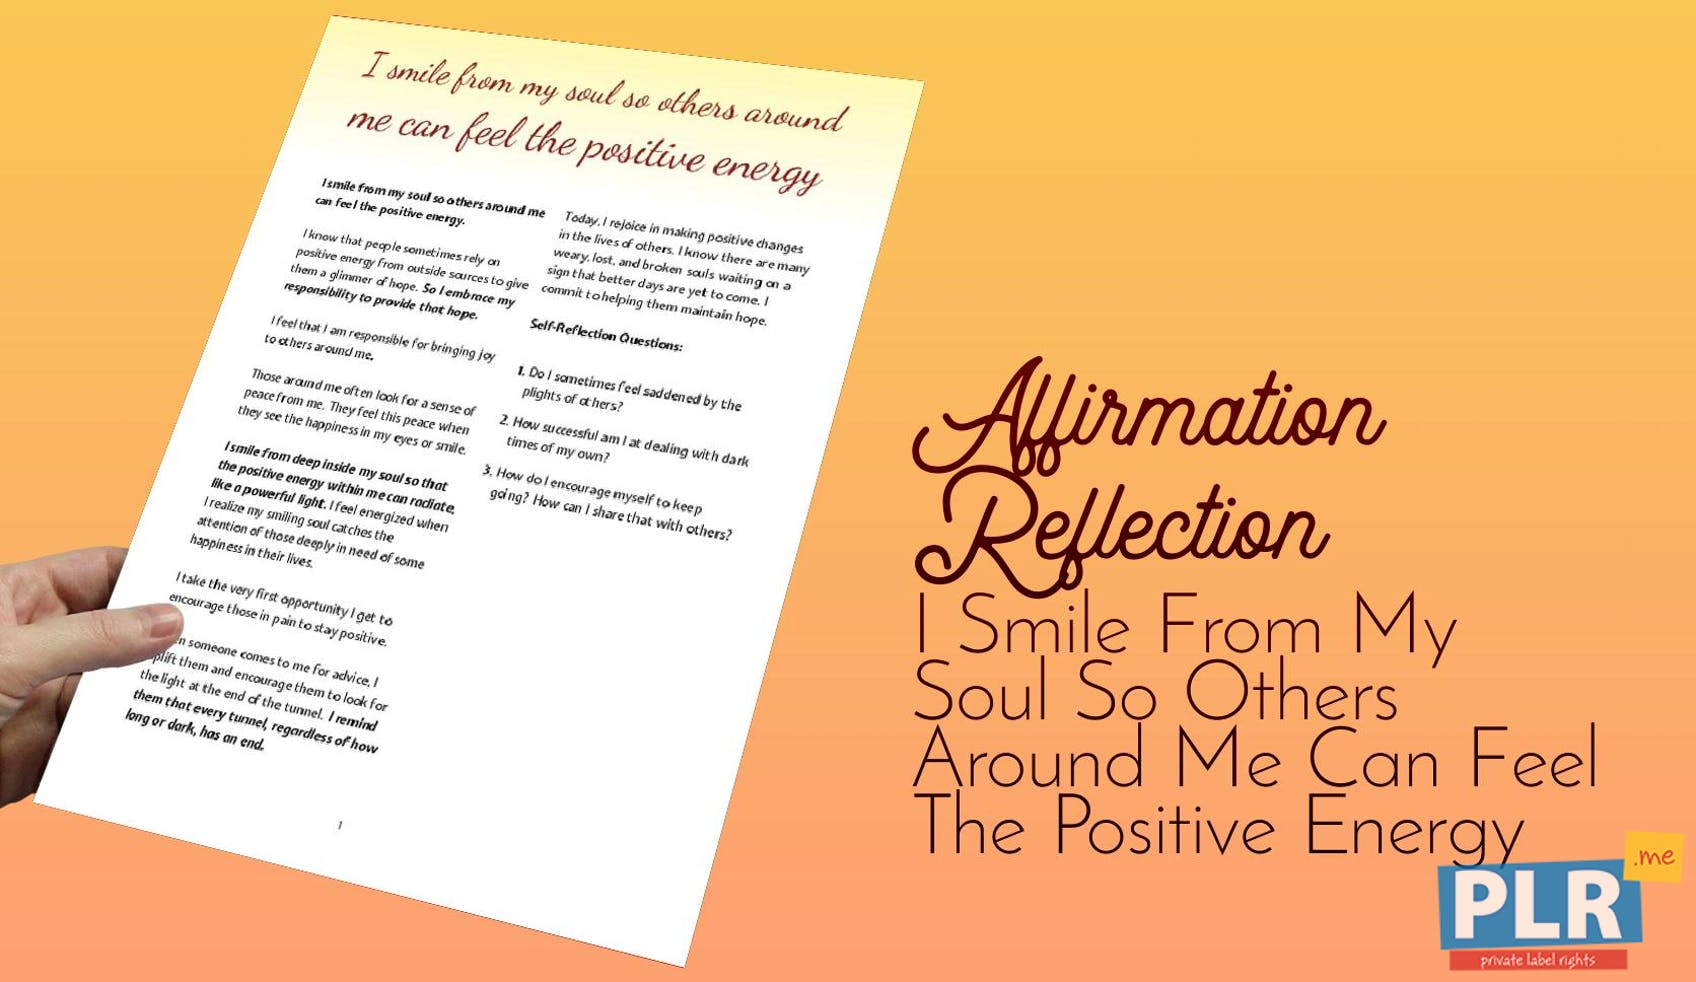 Plr Affirmation Reflections I Smile From My Soul So Others Around Me Can Feel The Positive Energy